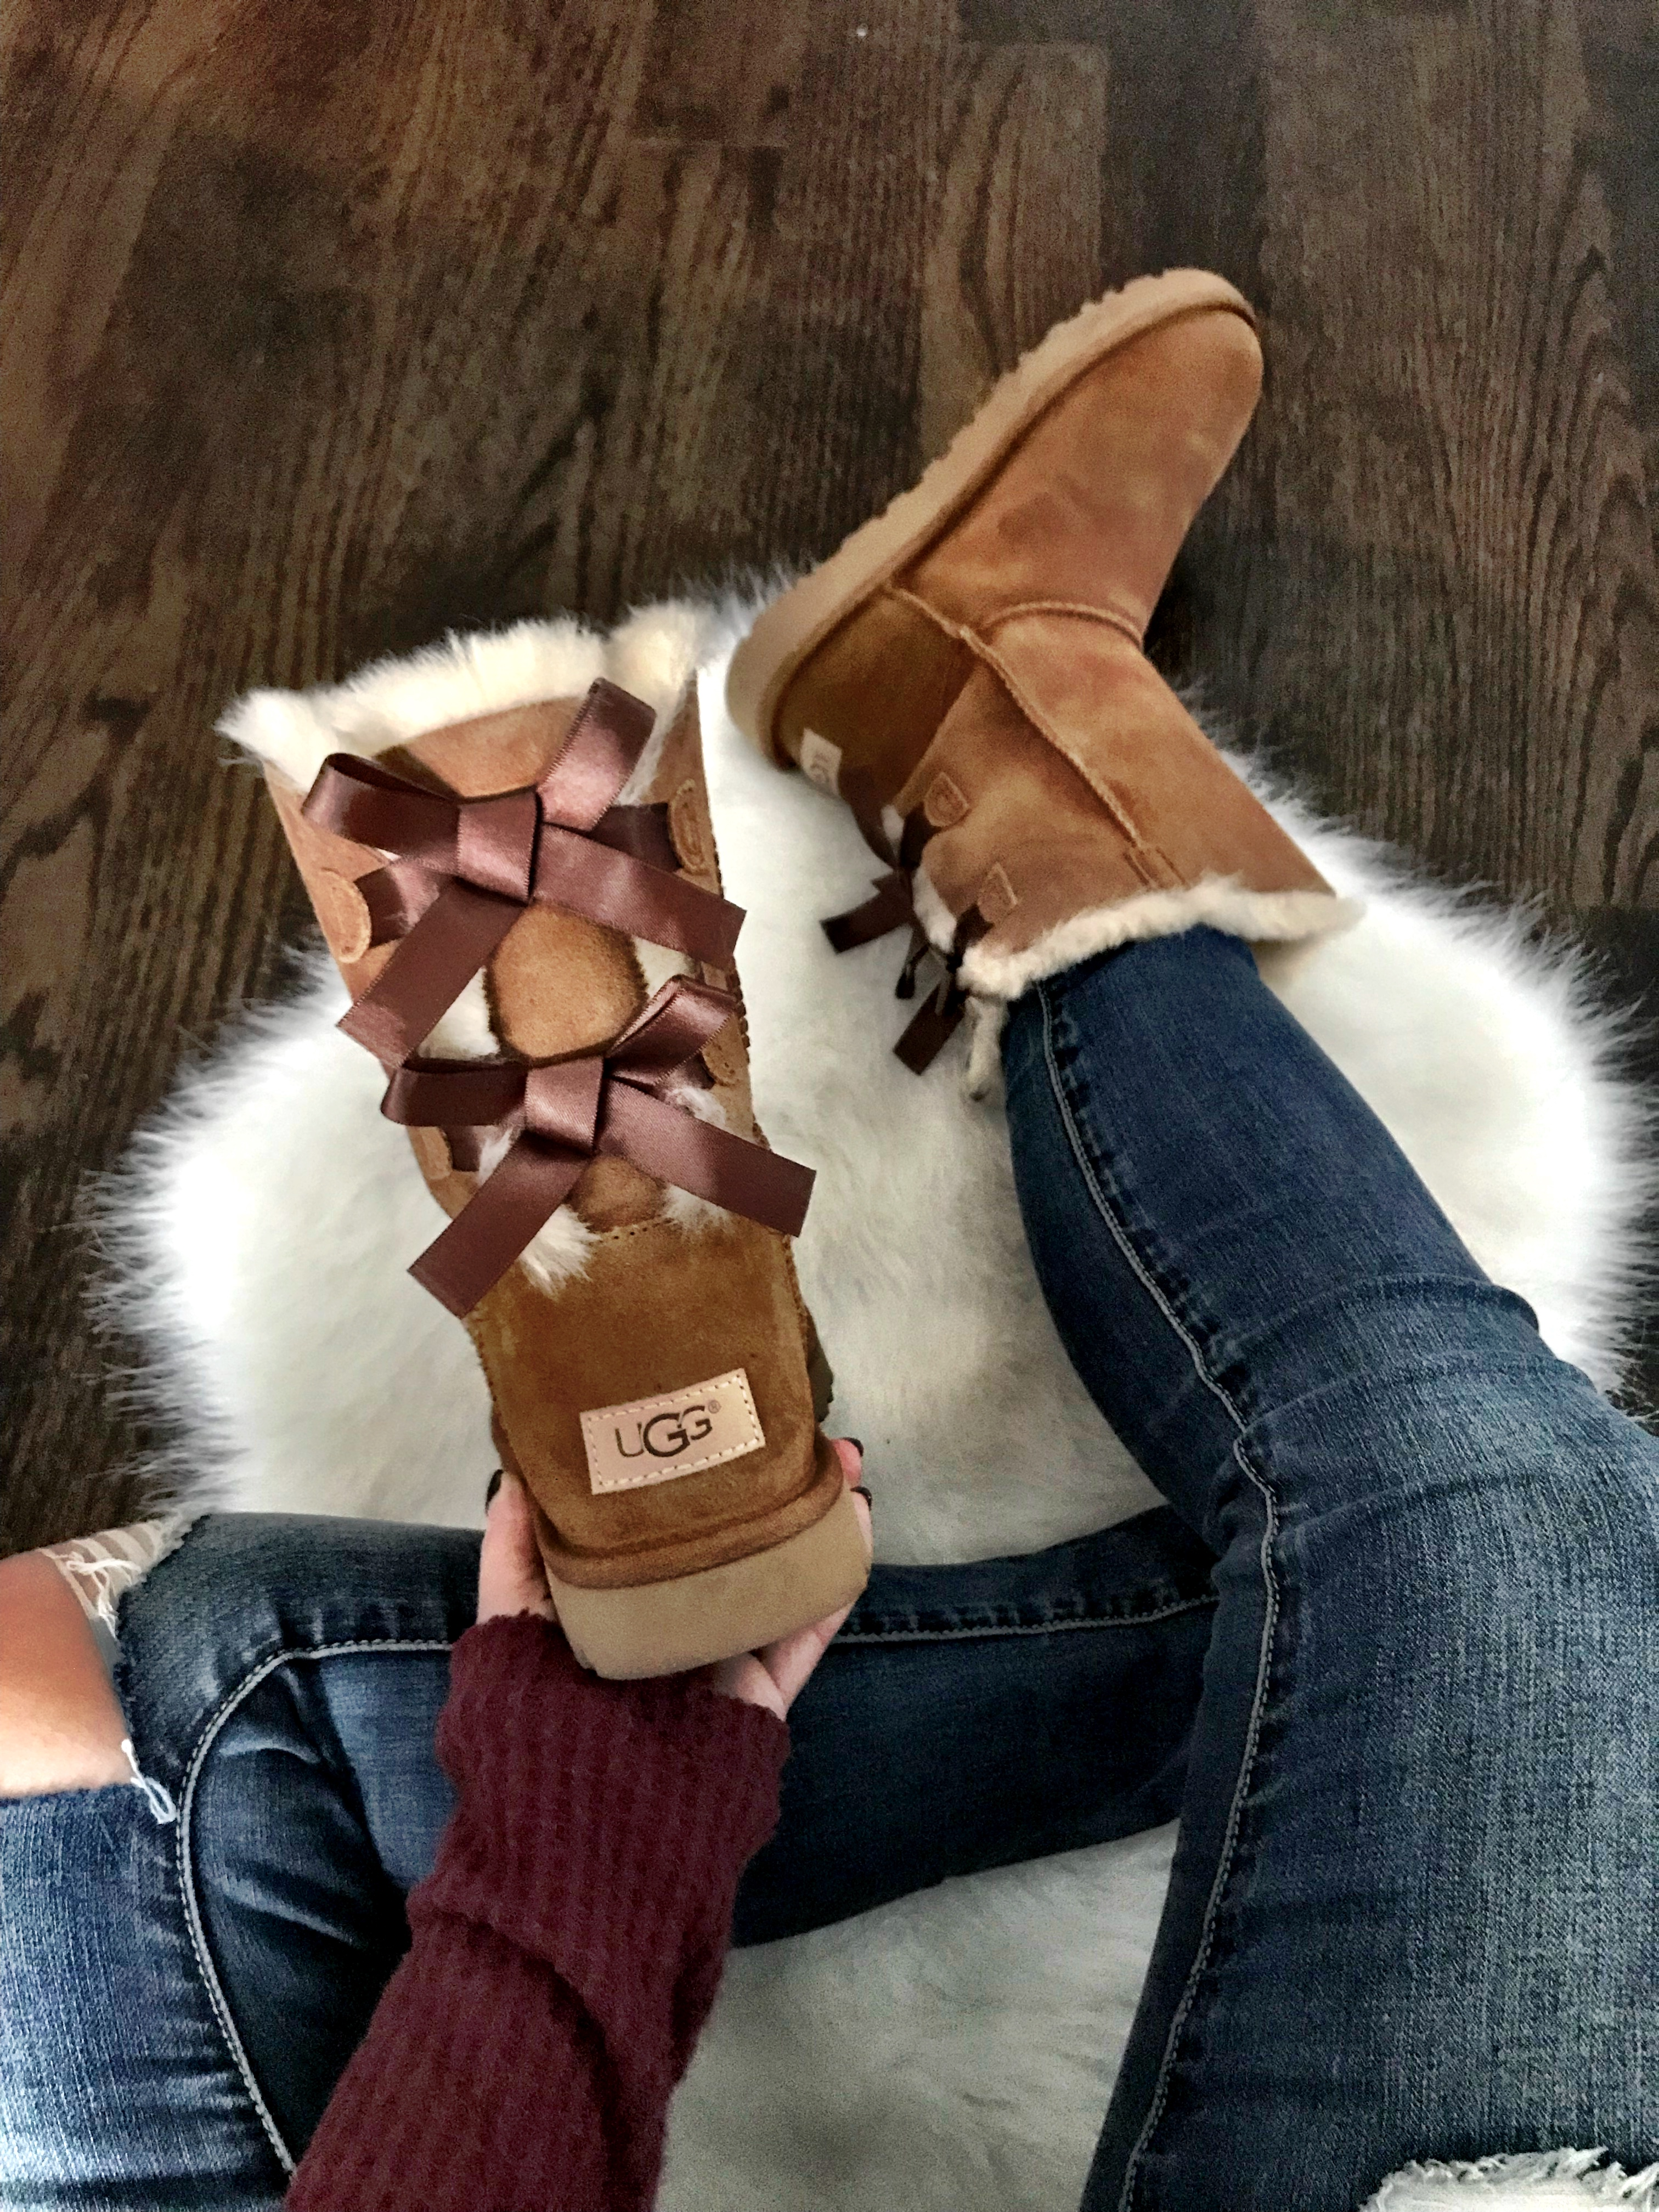 UGG Bailey Button II – I've had these for a long time and I'm amazed how well they held up. It's a classic style that looks cute with any outfit.